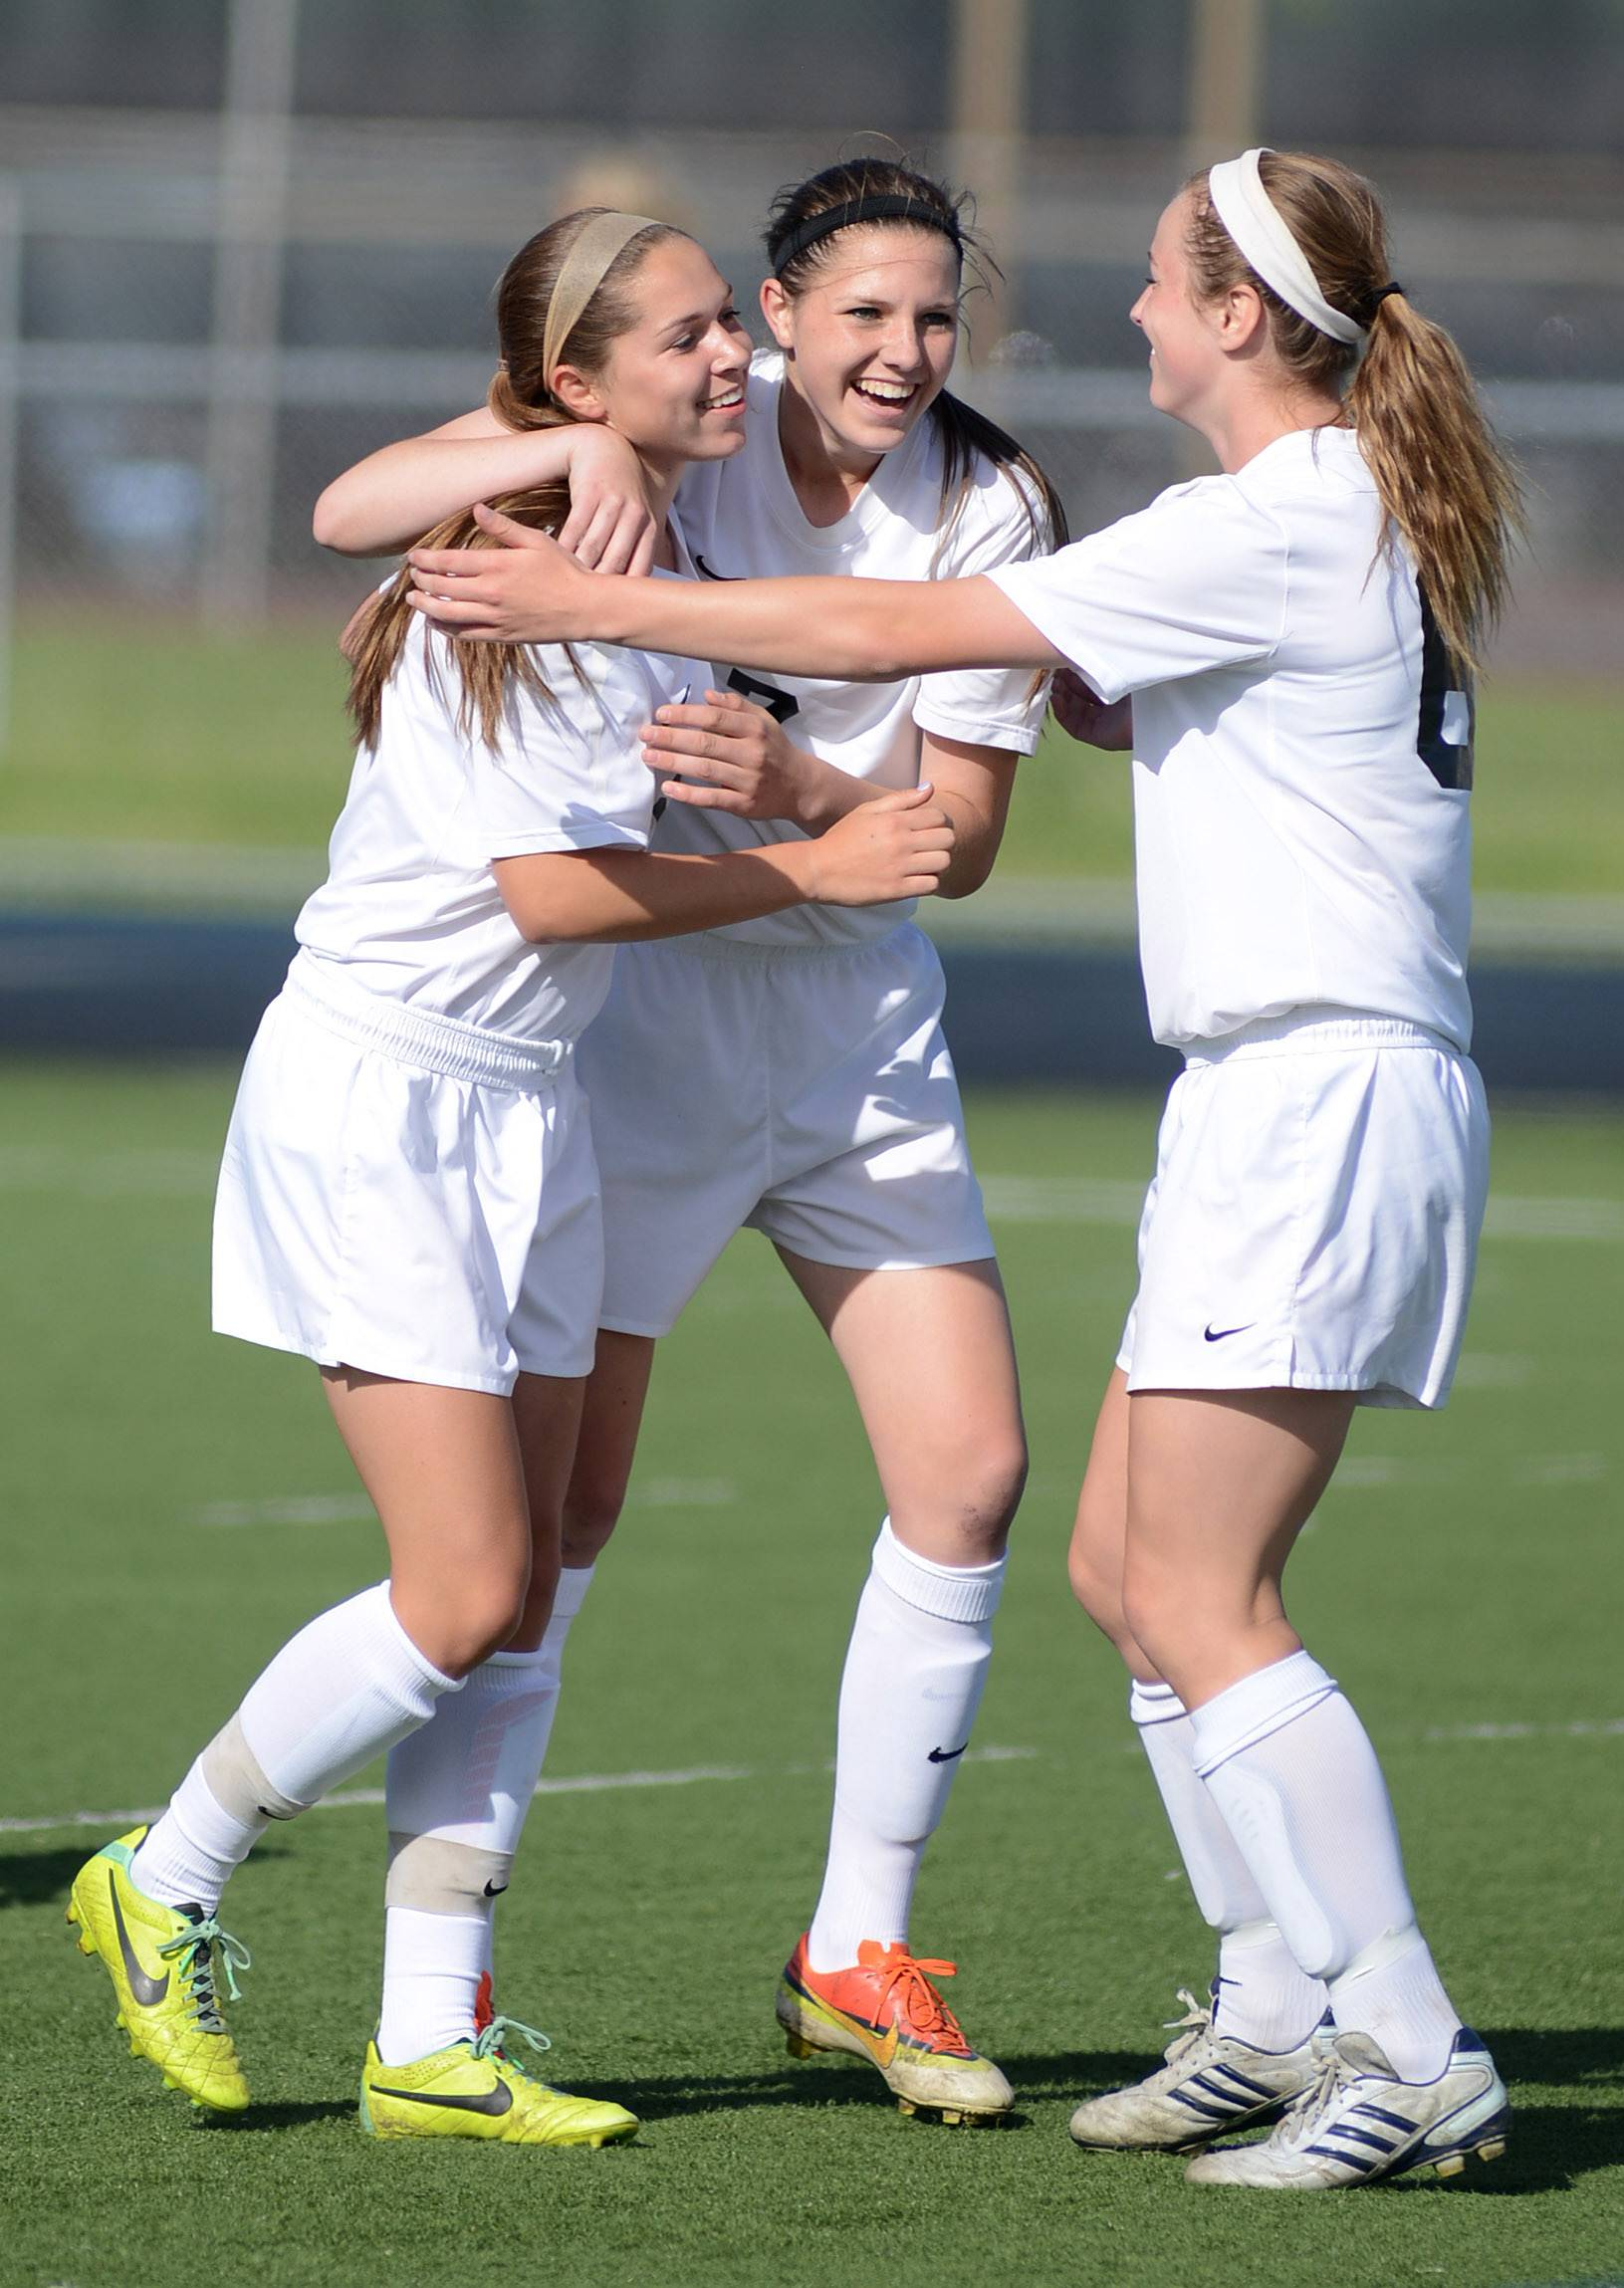 St. Charles East's Darcy Cunningham, far left, is congratulated by teammates Rion Gaffney, center, and Kelli Santo Paulo, right, after scoring a goal against Wheaton Warrenville South in the first half at West Chicago High School on Friday.